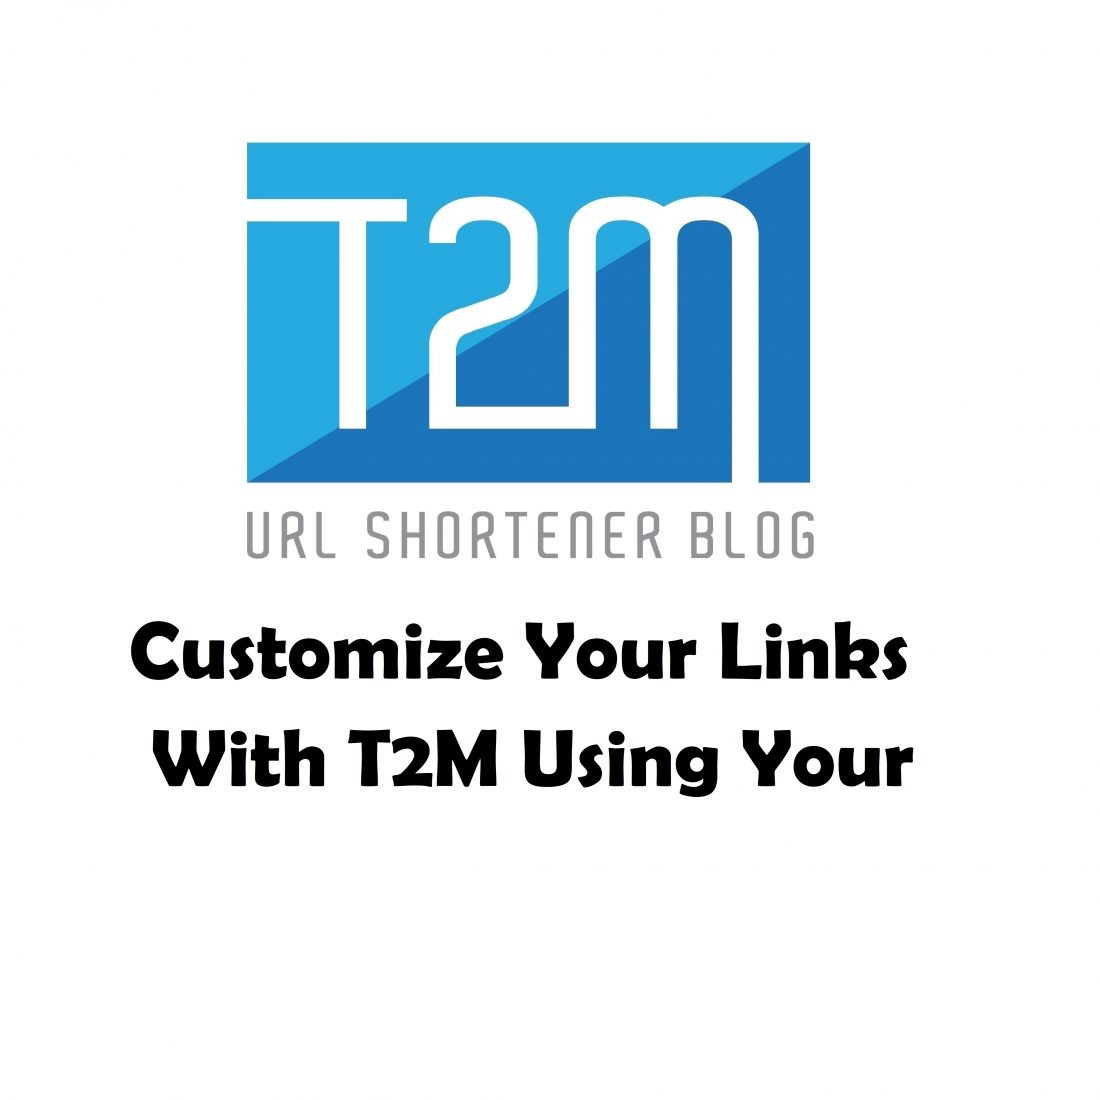 Customize Your Links With T2M Using Your Own Domain